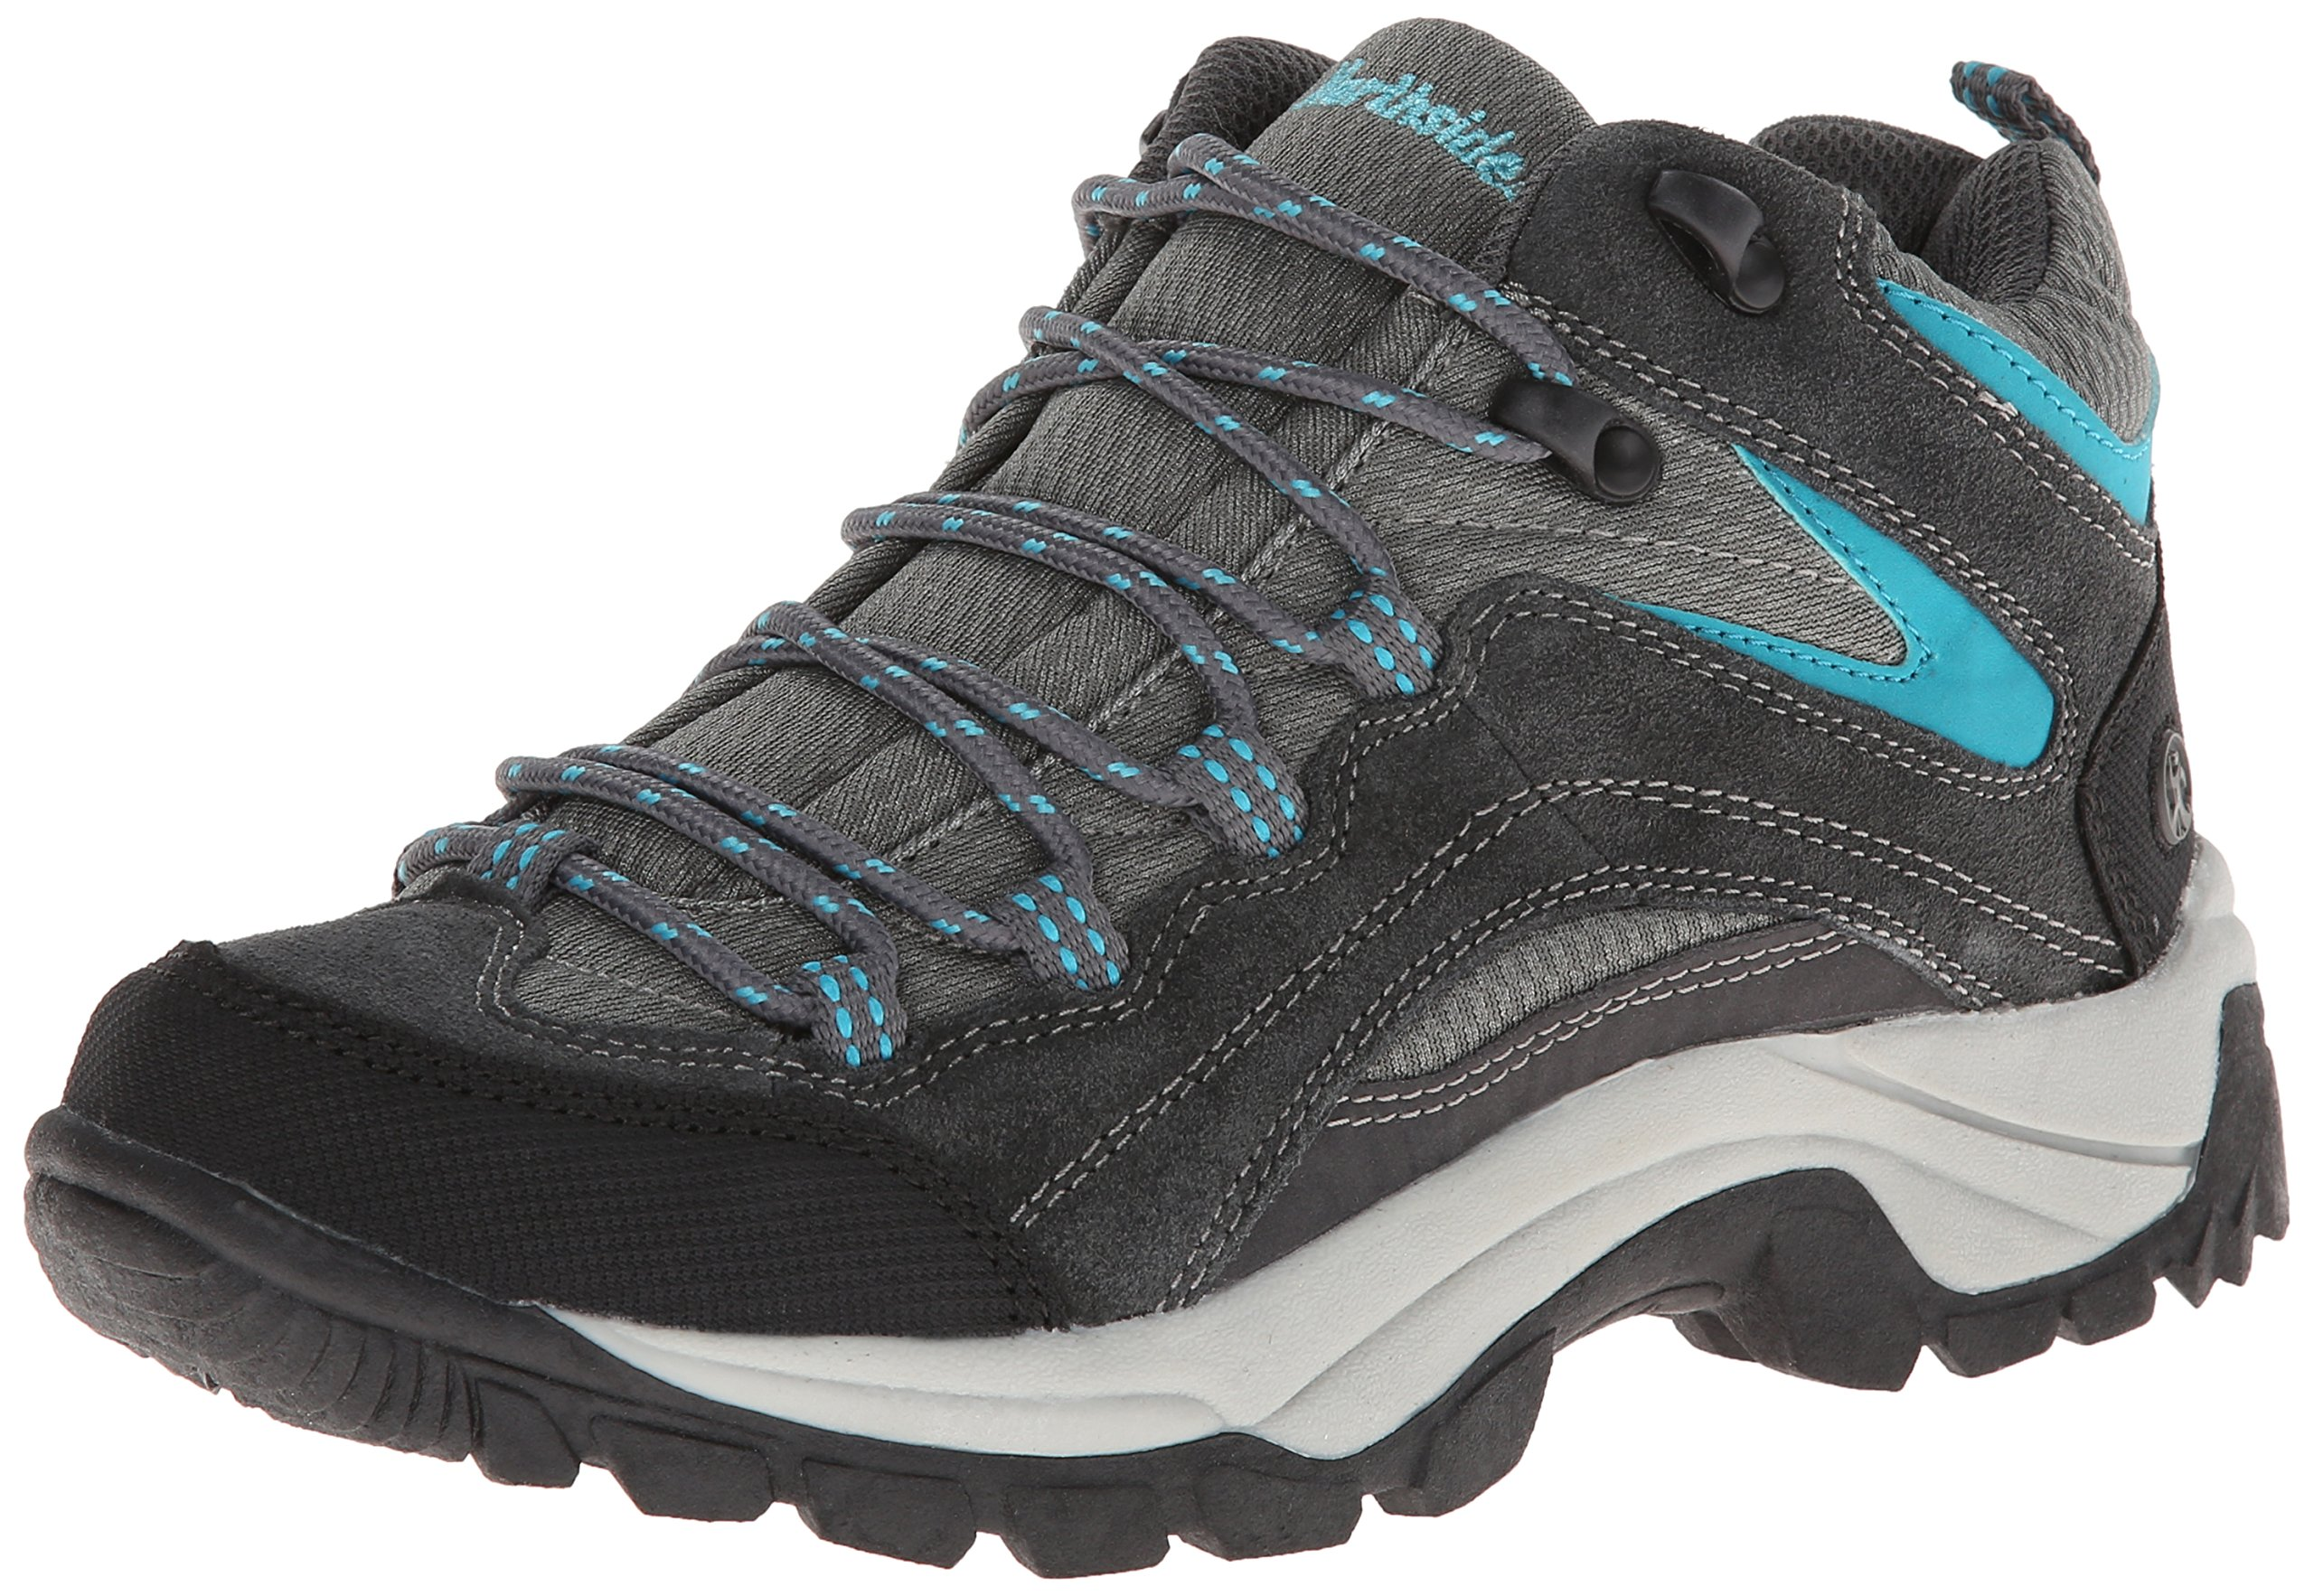 Northside Women's Pioneer Trail Running Shoe,Dark Gray/Dark Turquoise,10 M US by Northside